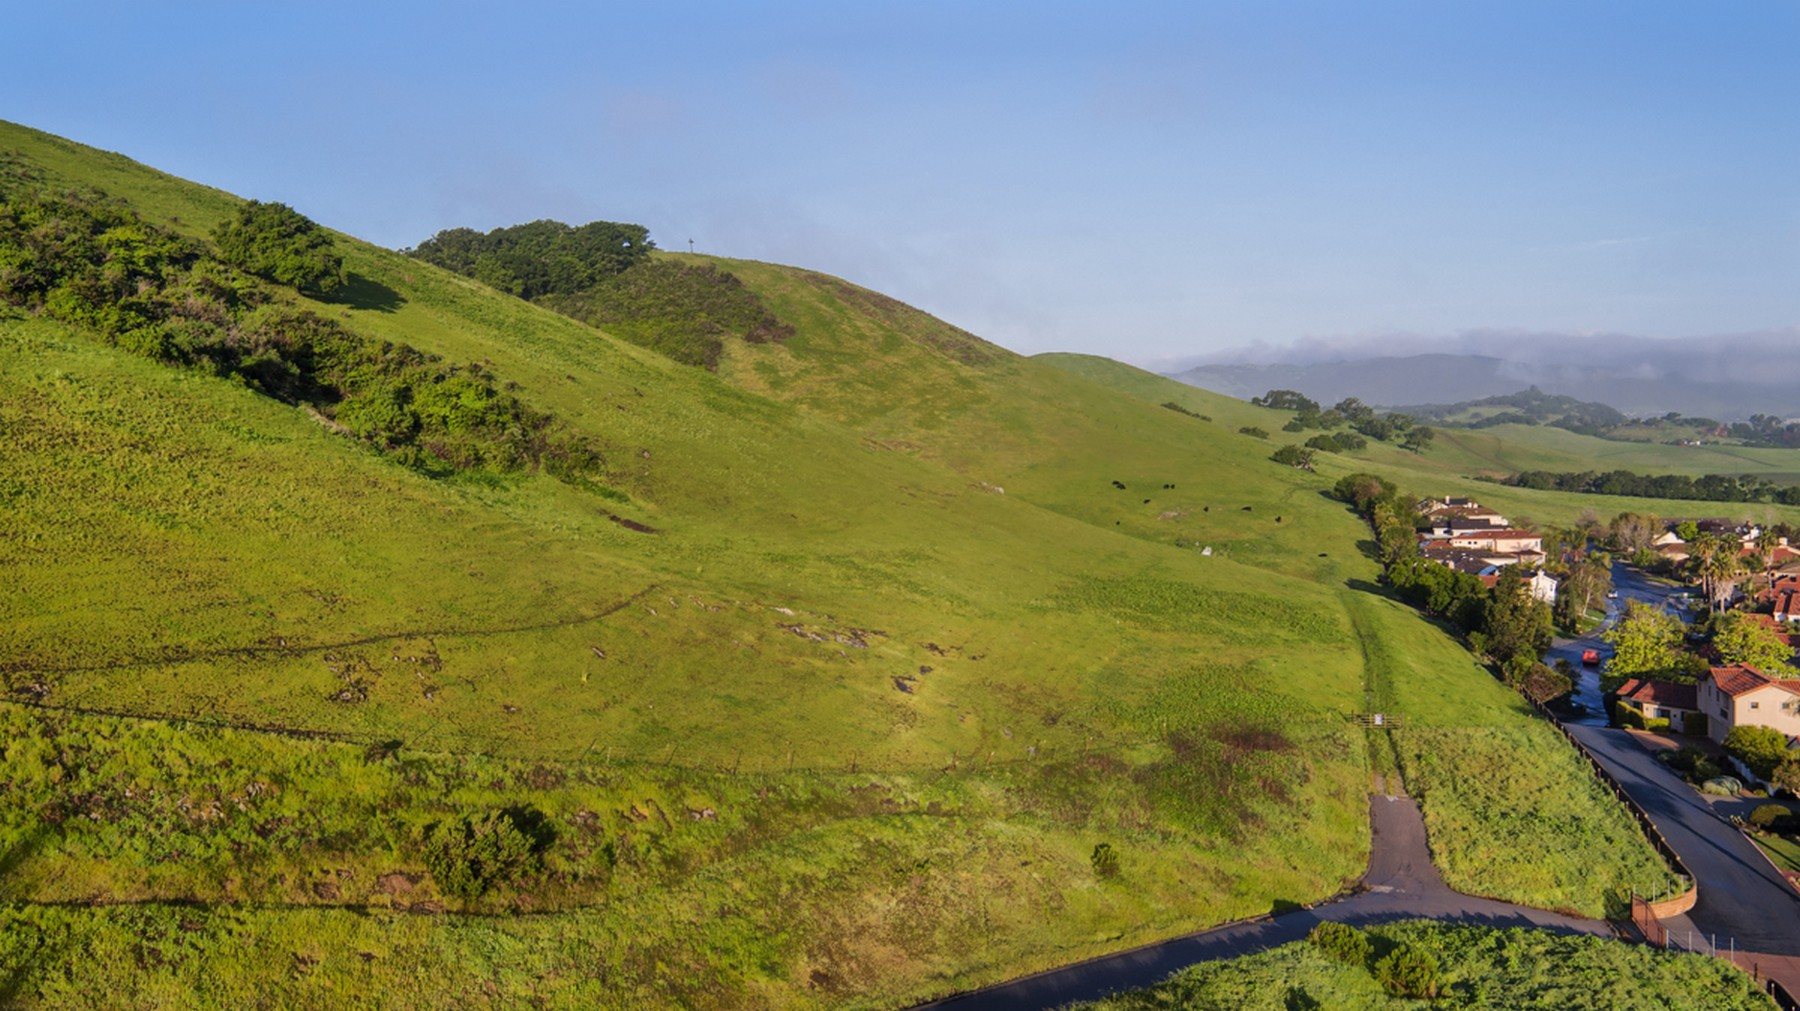 Земля для того Продажа на 11+ Acres overlooking Edna Valley & City of SLO Whiskey Run Lane San Luis Obispo, Калифорния 93401 Соединенные Штаты